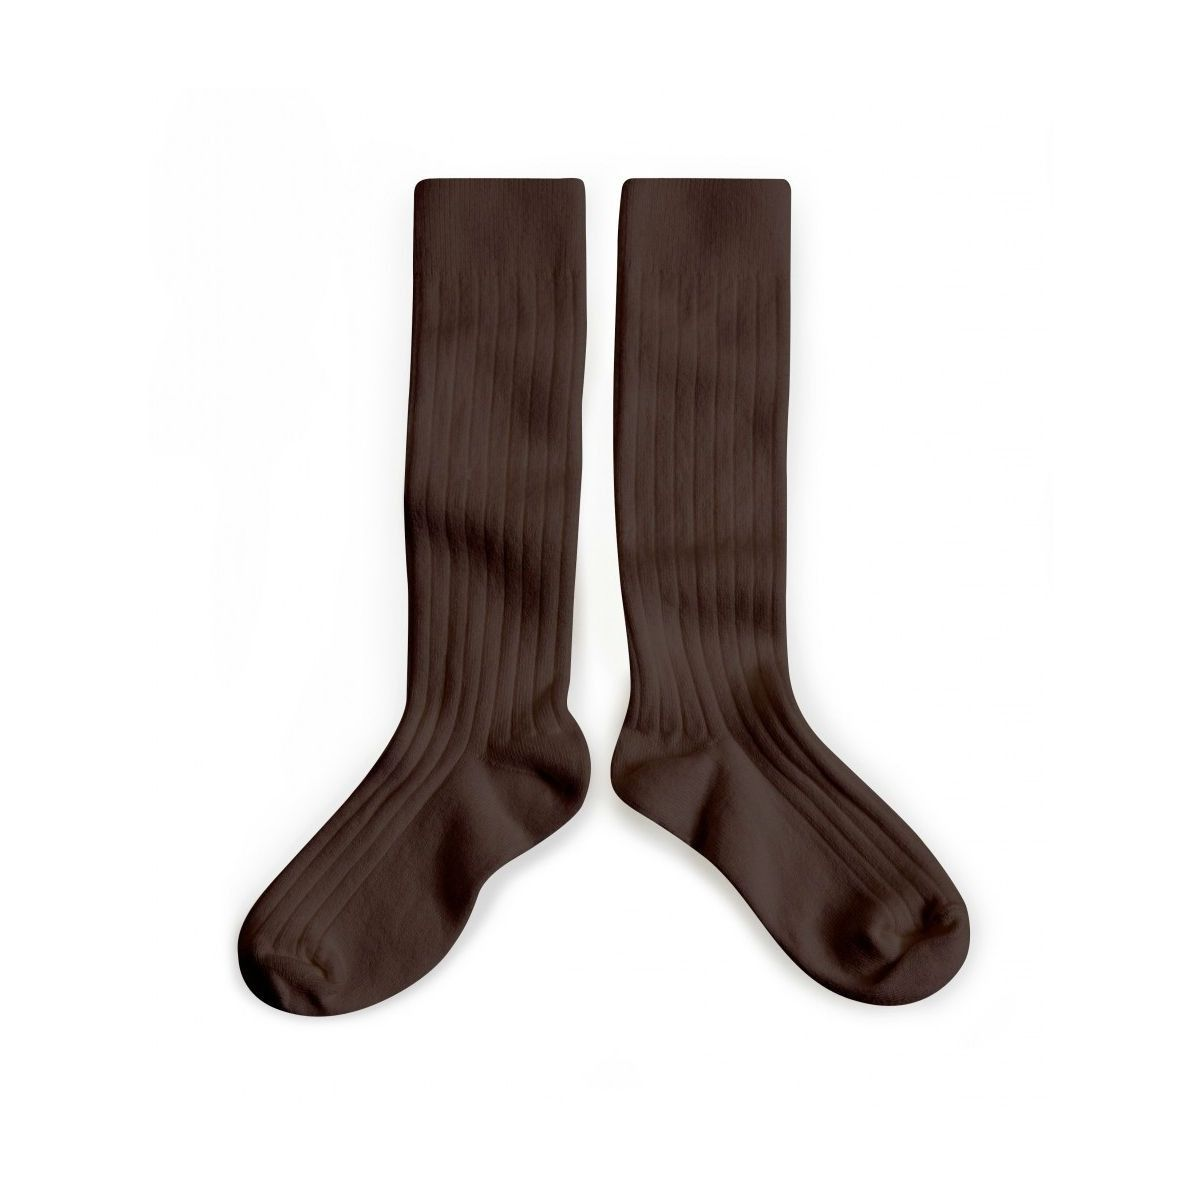 Kneesocks Cafe Noir dark brown - Collégien